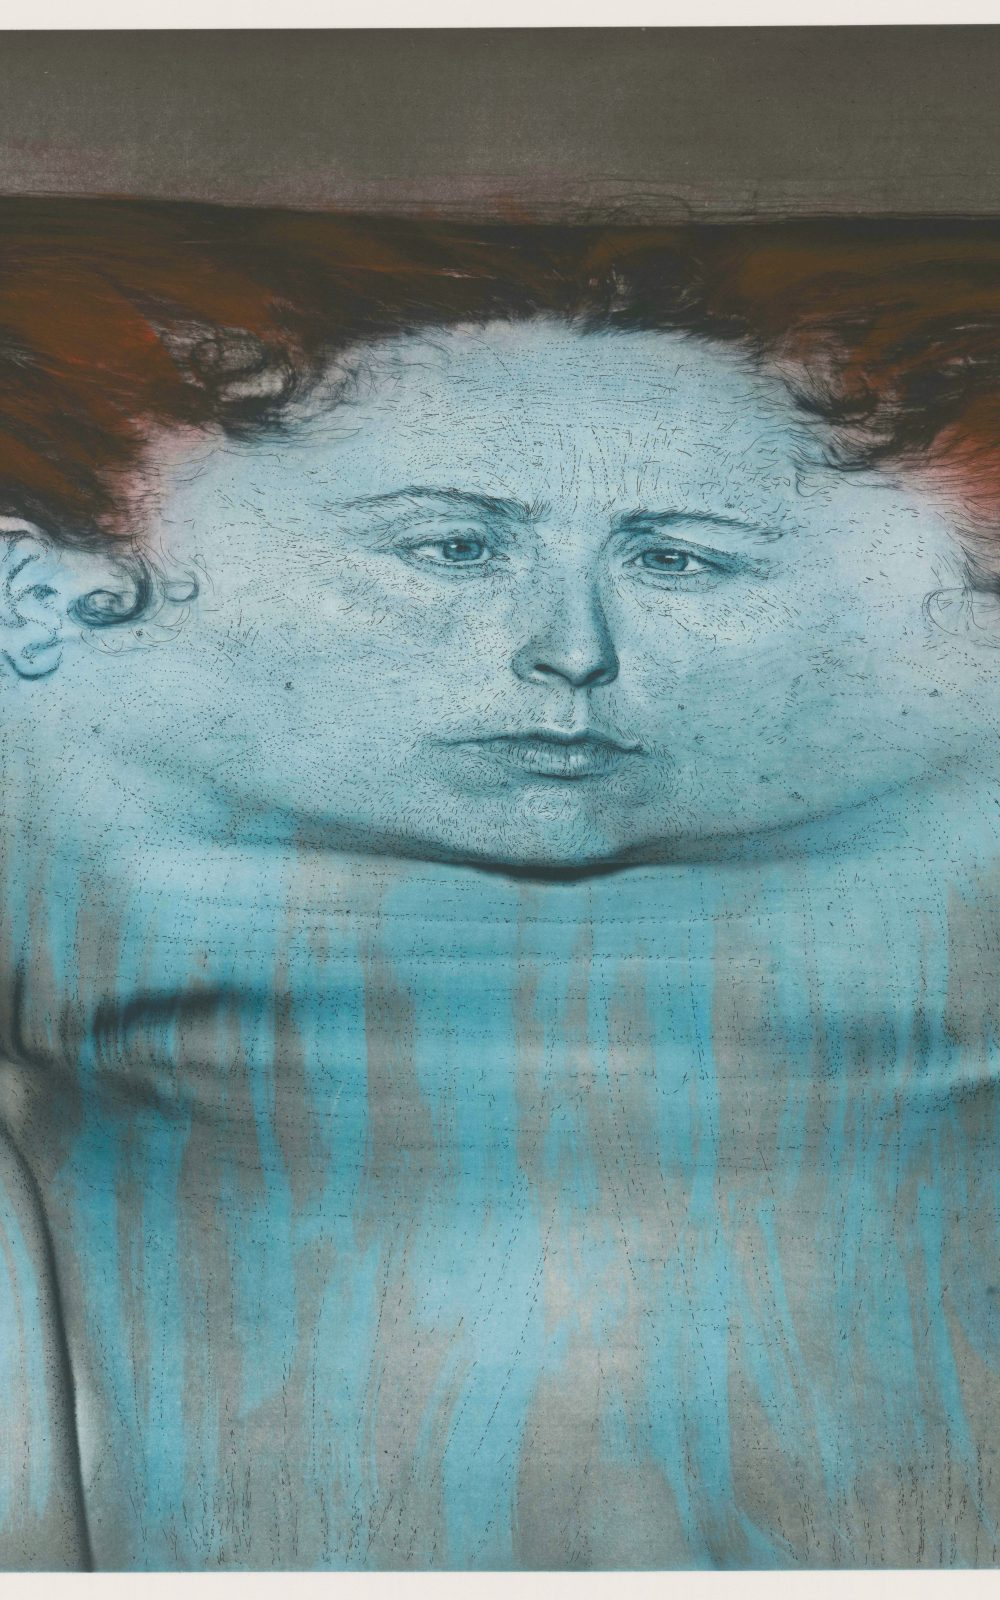 Kiki Smith, My Blue Lake, 1995, Photogravüre und Lithographie auf En Tout Cas-Papier, 1110 x 1391 mm, Staatliche Graphische Sammlung München, Schenkung der Künstlerin © Kiki Smith, courtesy Pace Gallery